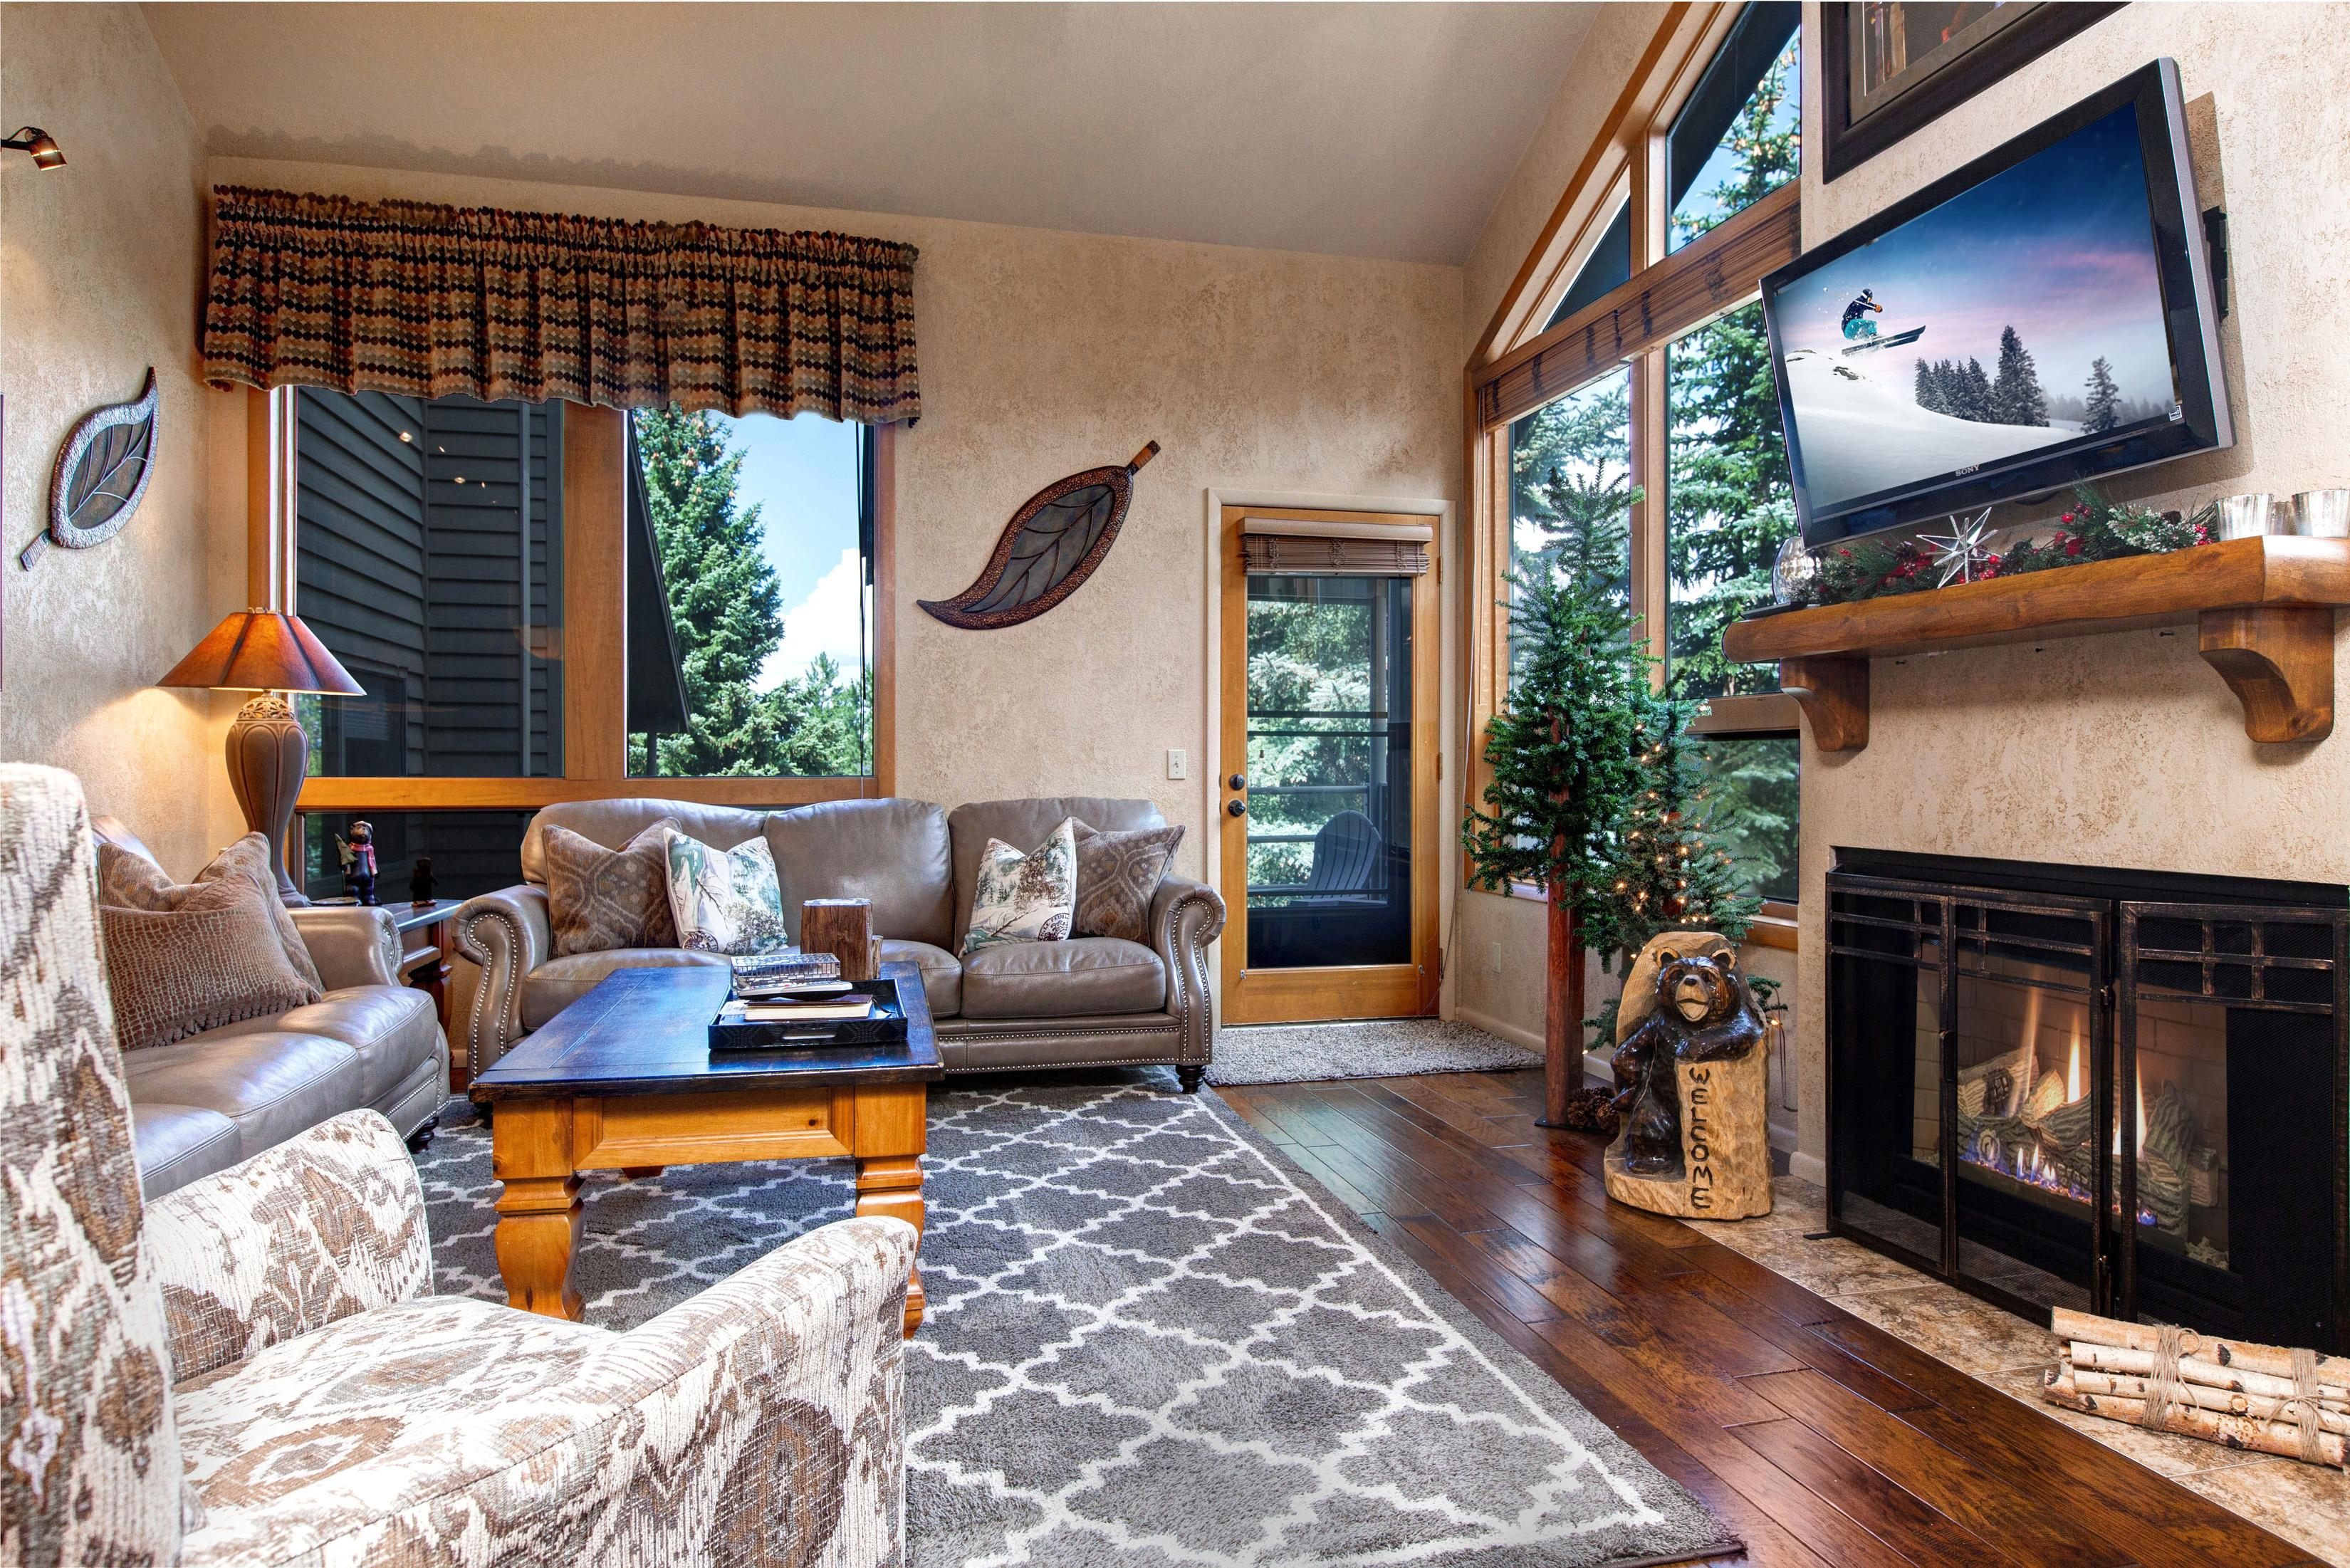 Welcome to Park City! Your townhome is professionally managed by TurnKey Vacation Rentals.